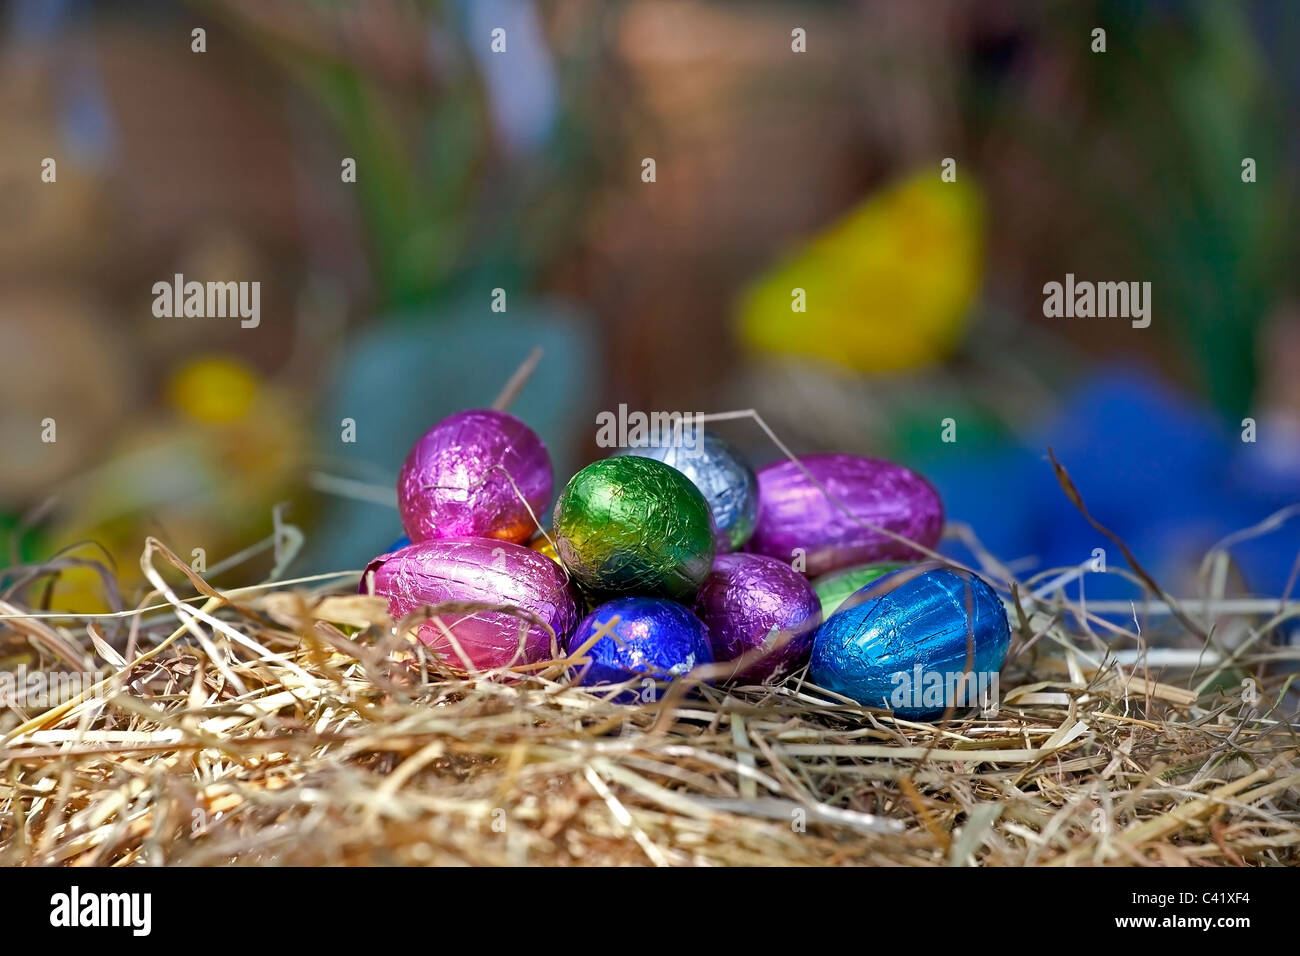 colored eggs in a nest of straw - Stock Image